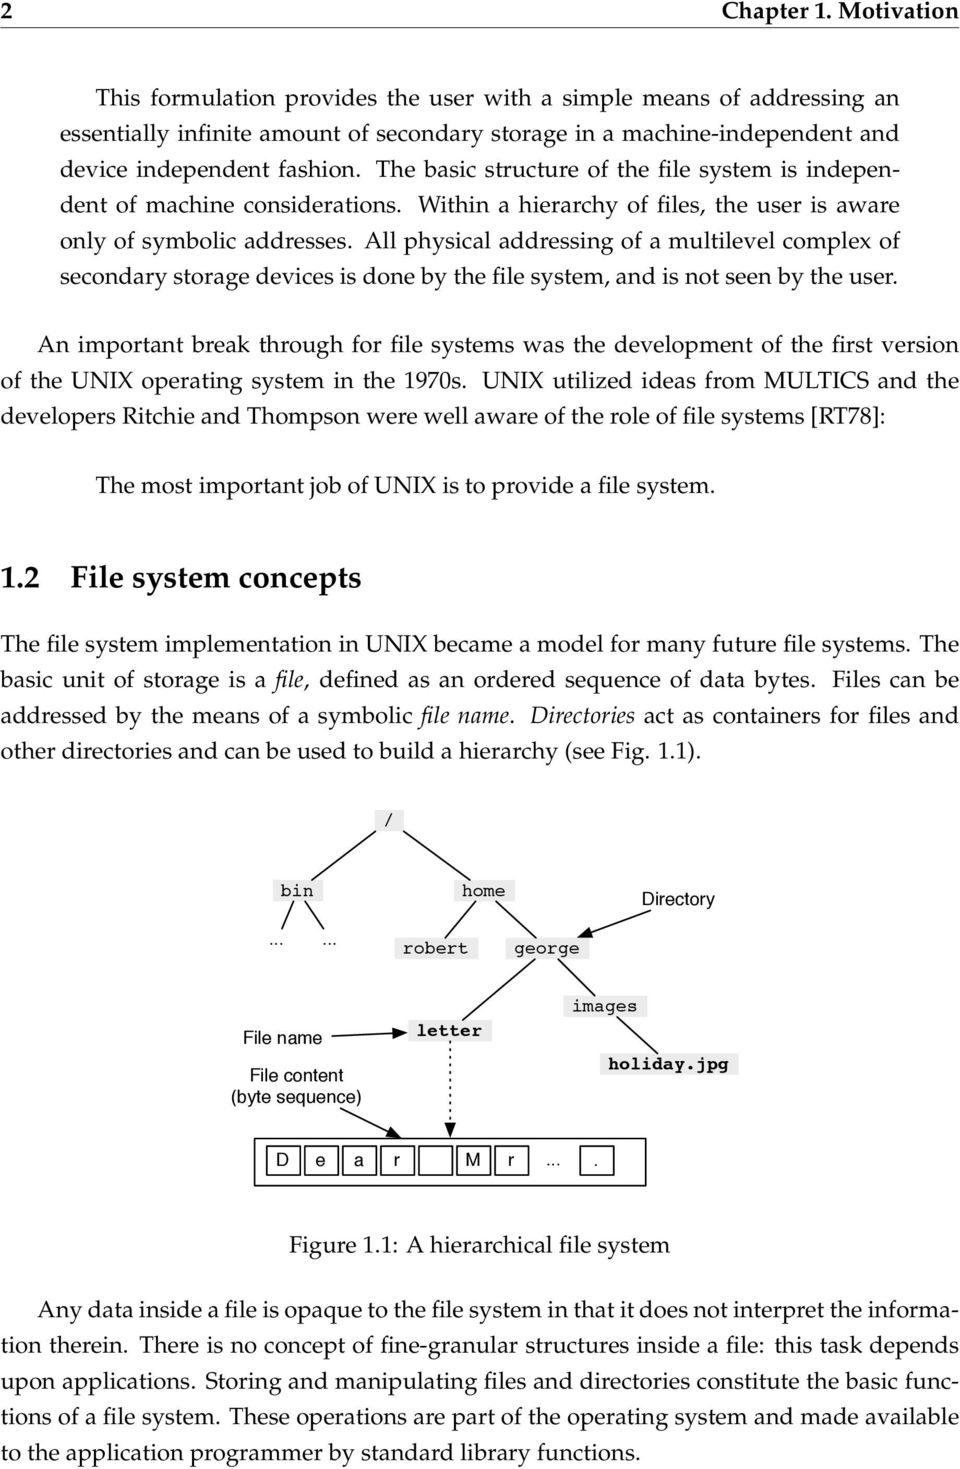 The basic structure of the file system is independent of machine considerations. Within a hierarchy of files, the user is aware only of symbolic addresses.